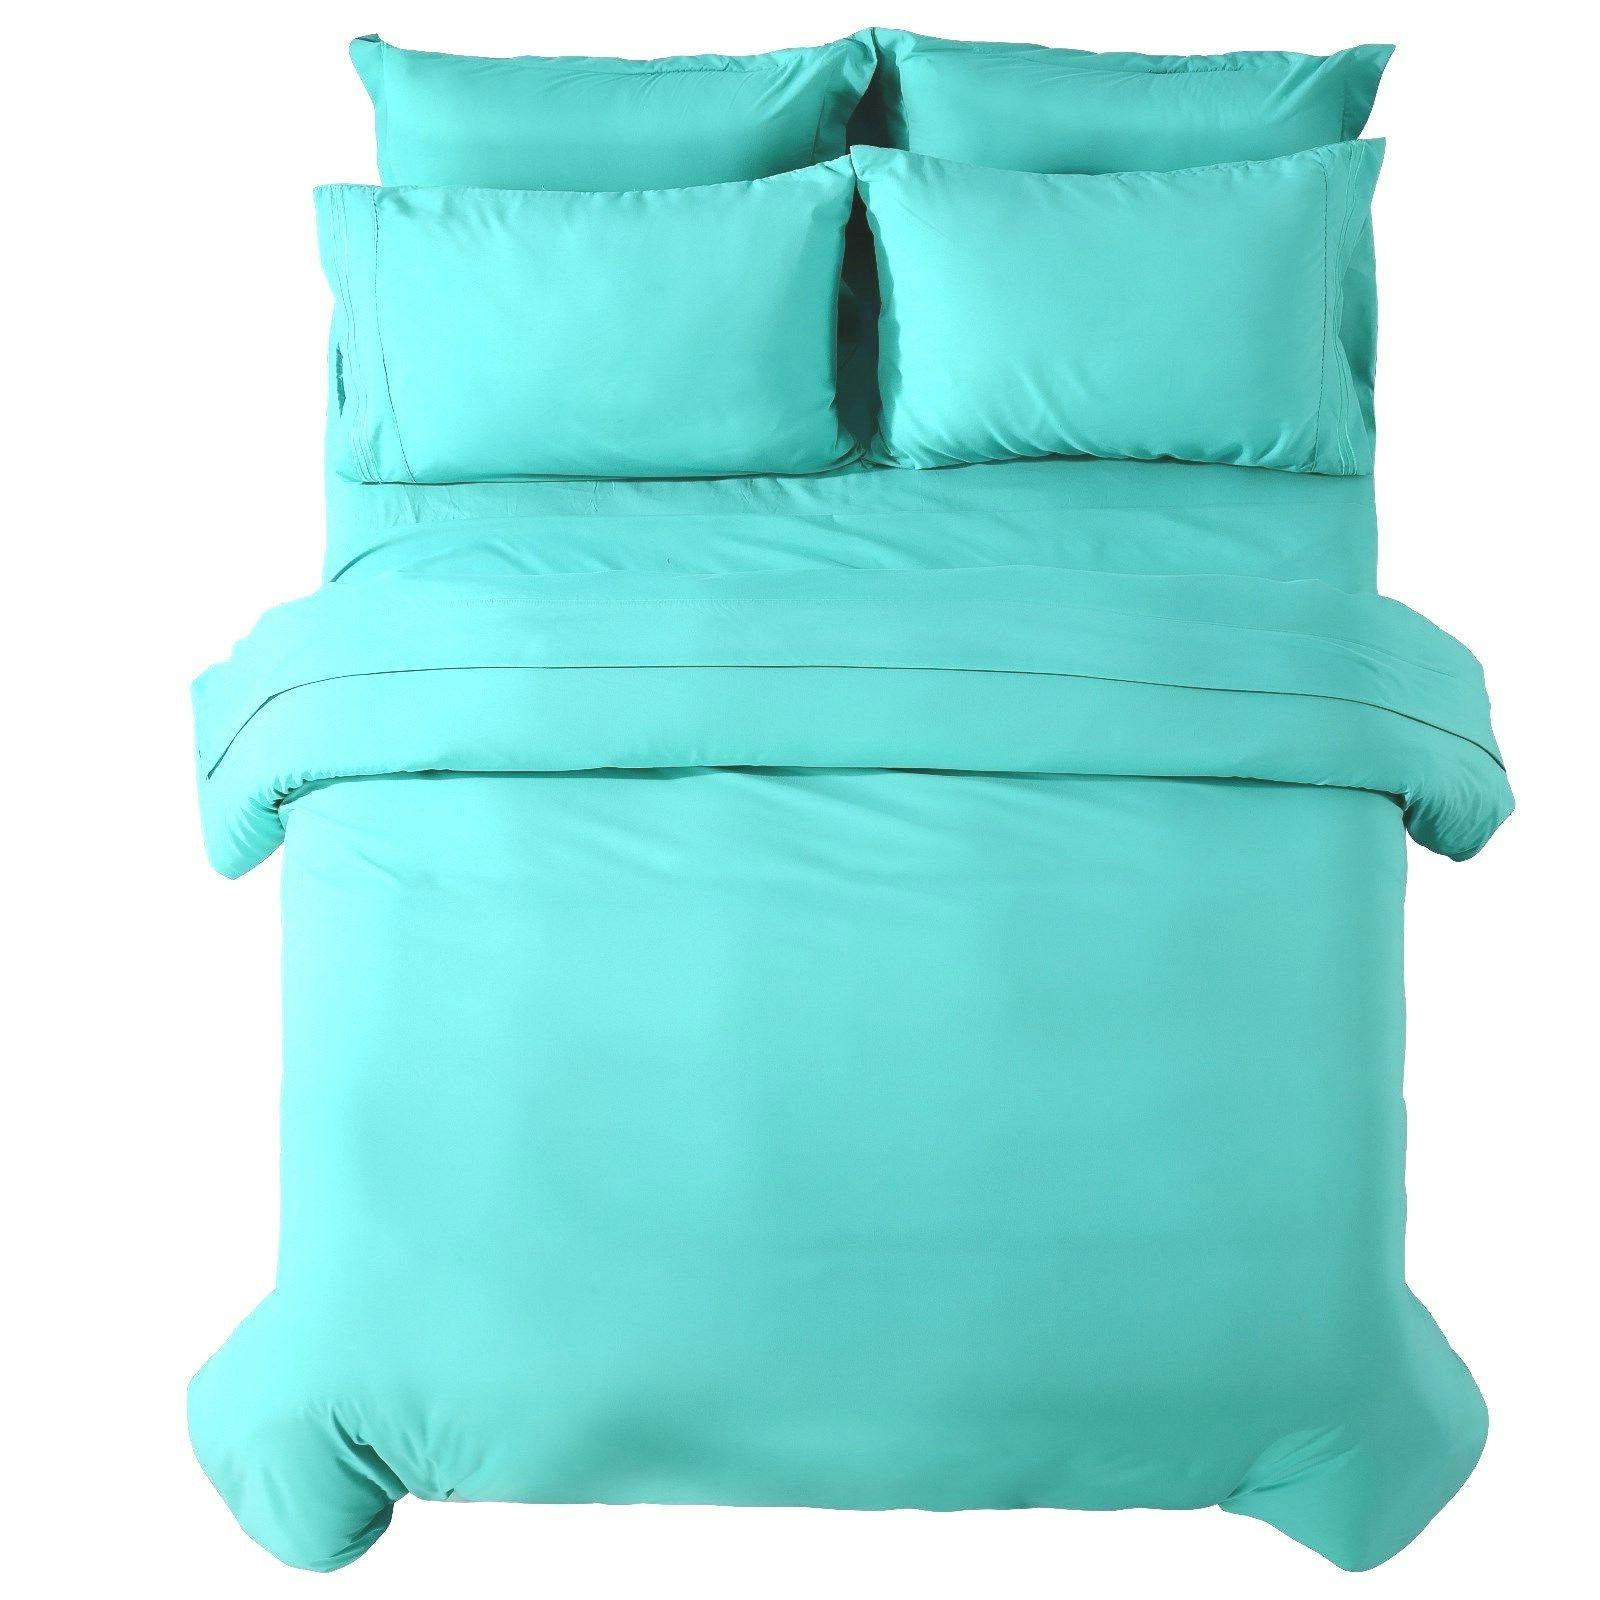 3 Duvet Set Egyptian Count - a Comforter